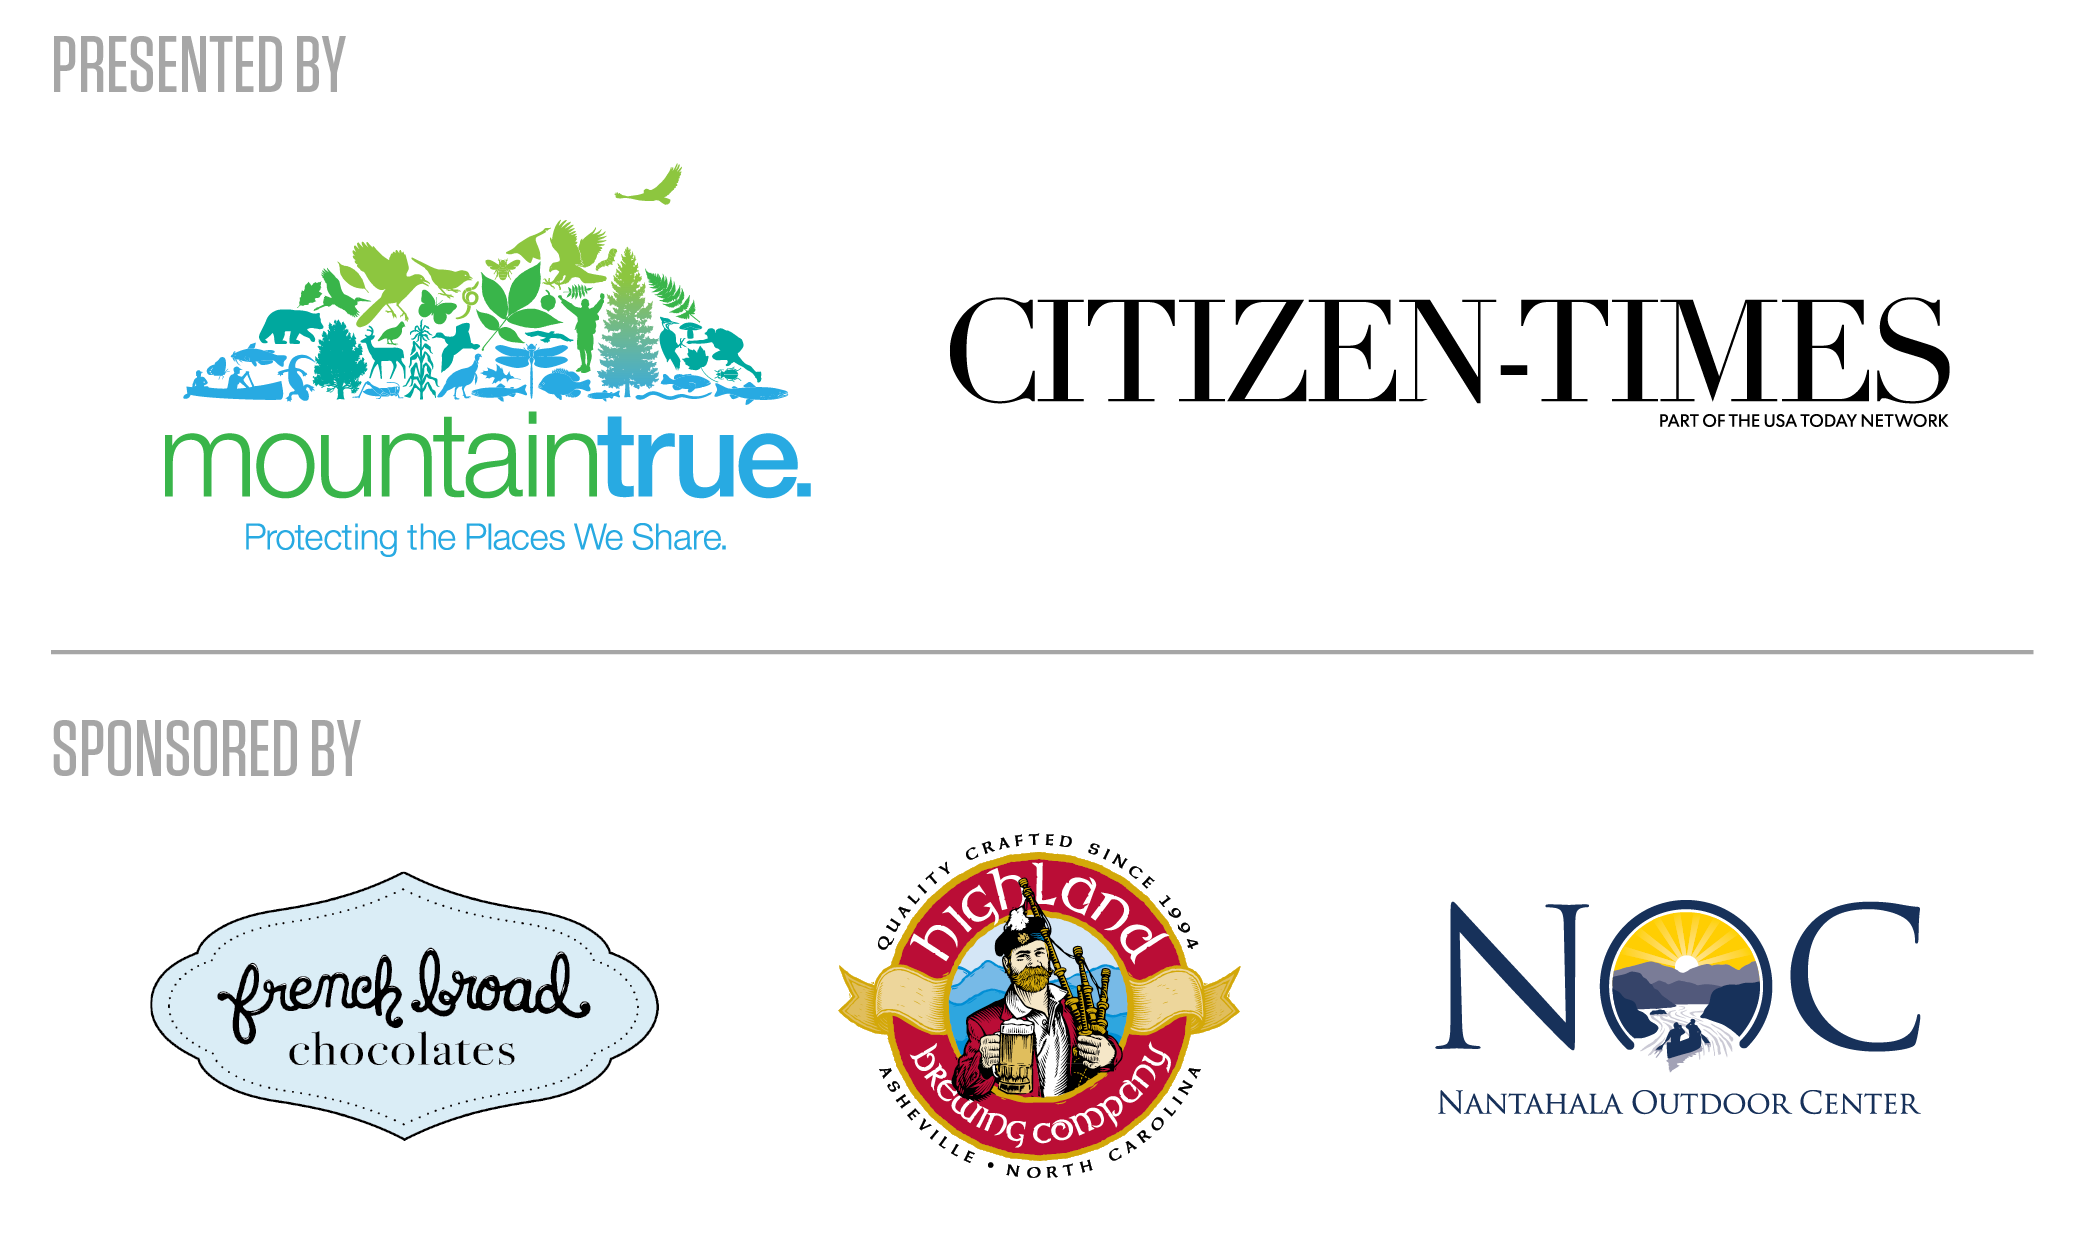 Our Sponsors: MountainTrue, Citizen-Times, French Broad Chocolates, Highland Brewing Co and Nantahala Outdoor Center